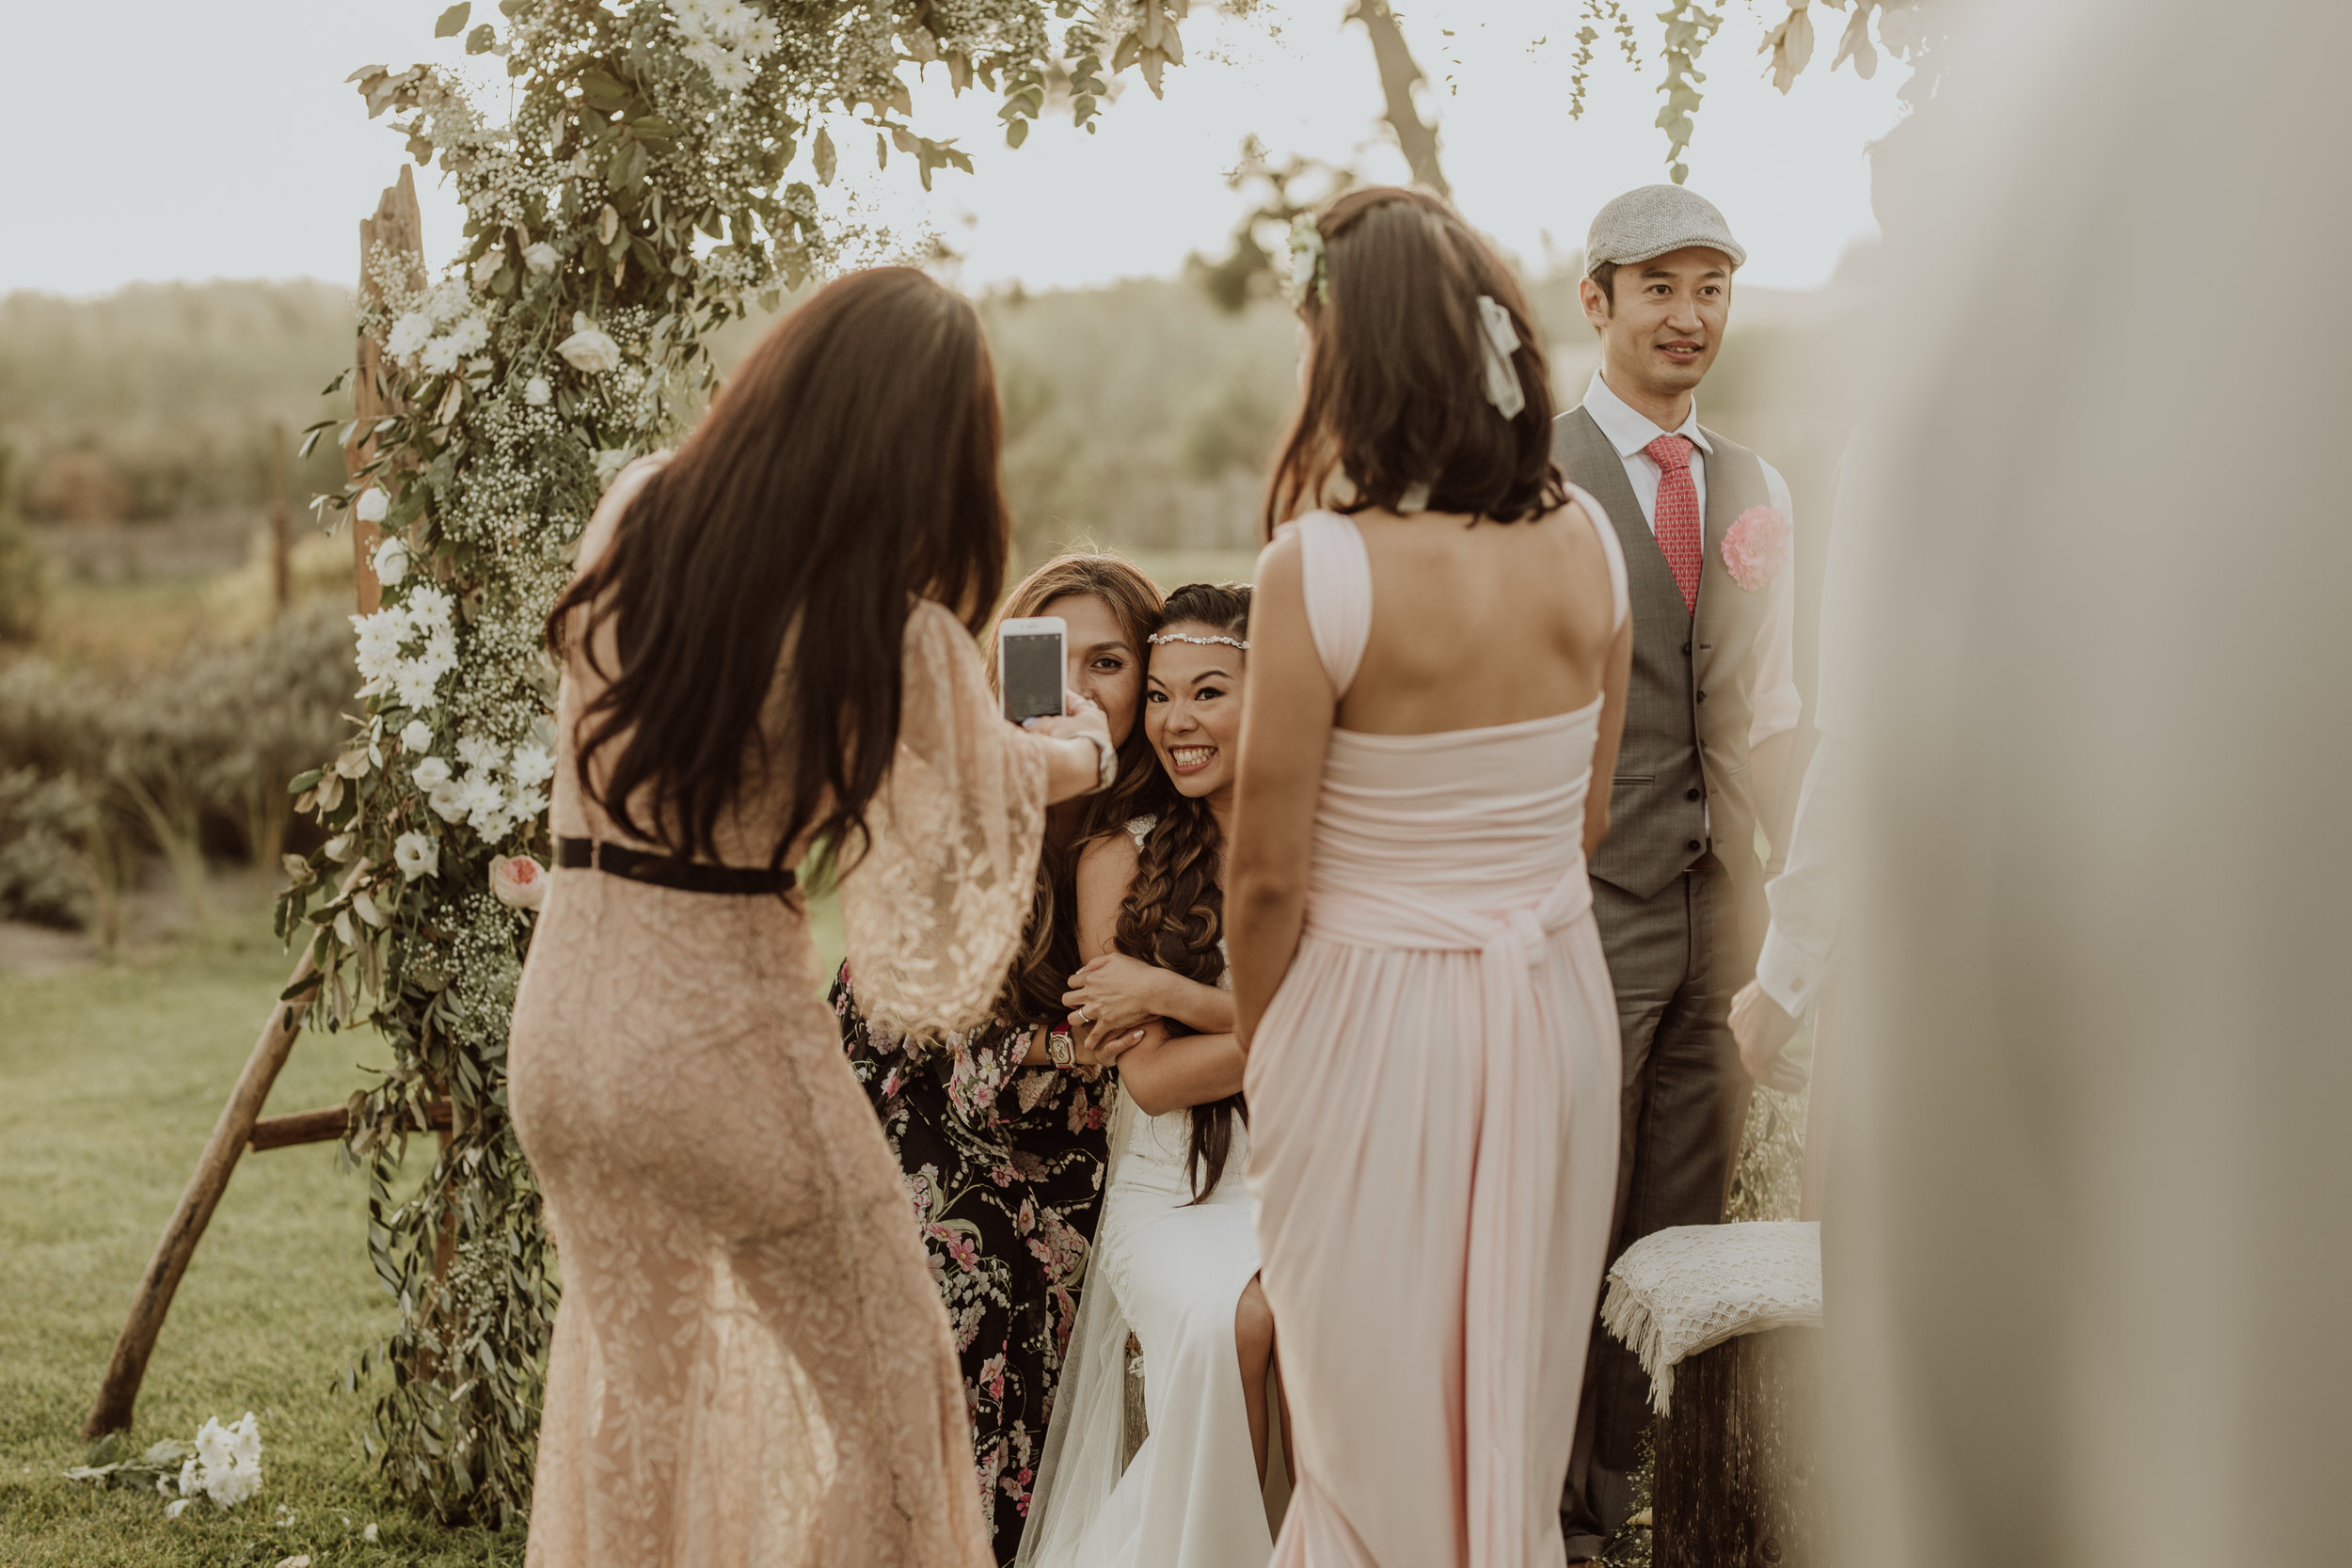 Y&M_847_15_September_2018WEDDING_DAY.jpg